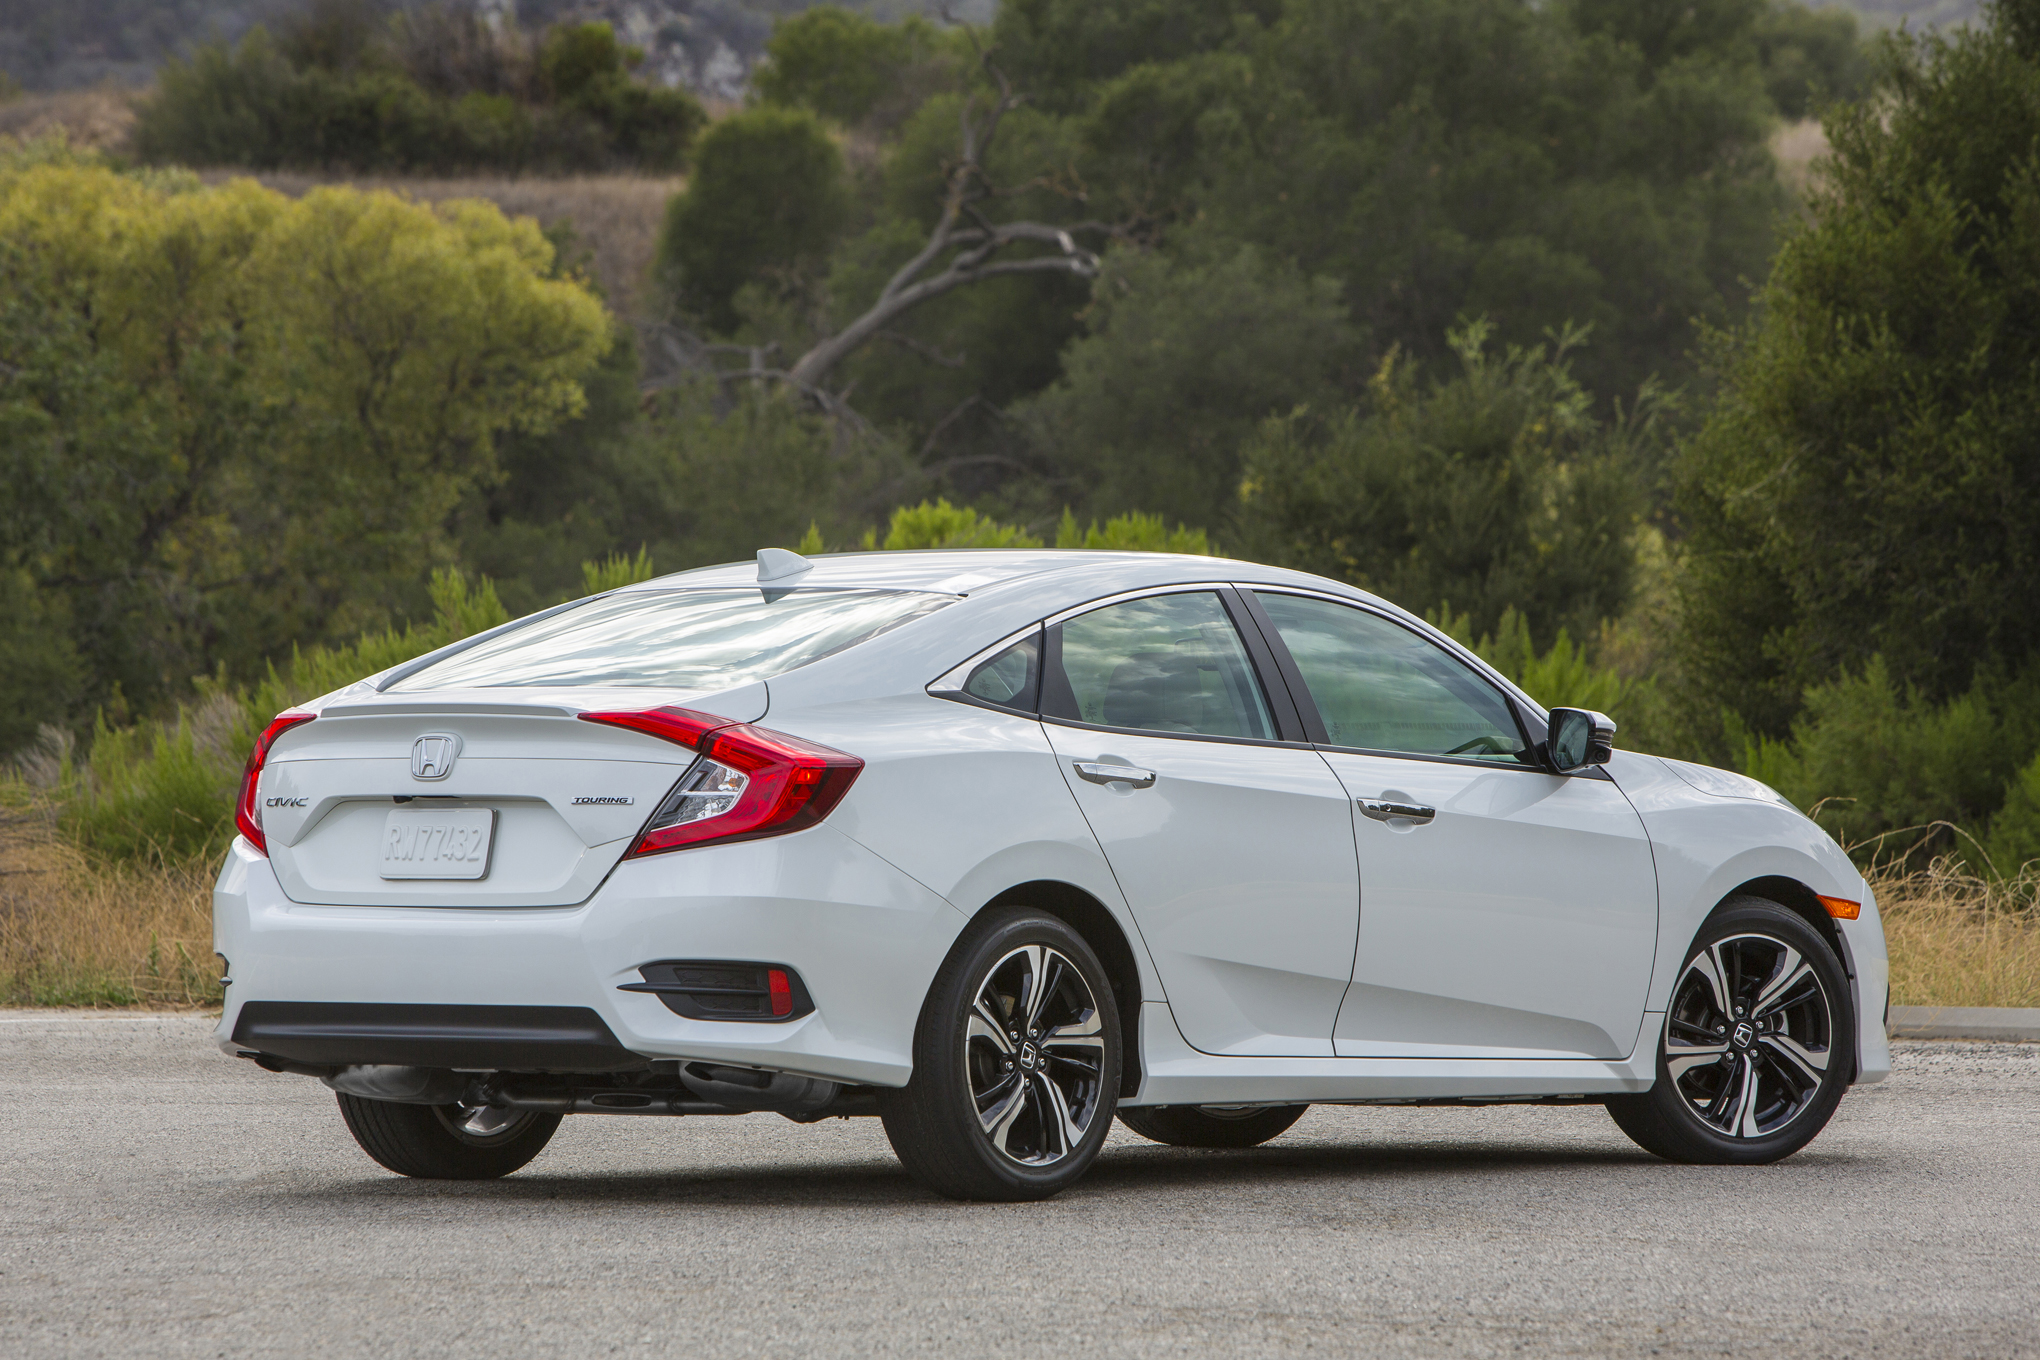 2016-Honda-Civic-Touring-rear-three-quarters-04